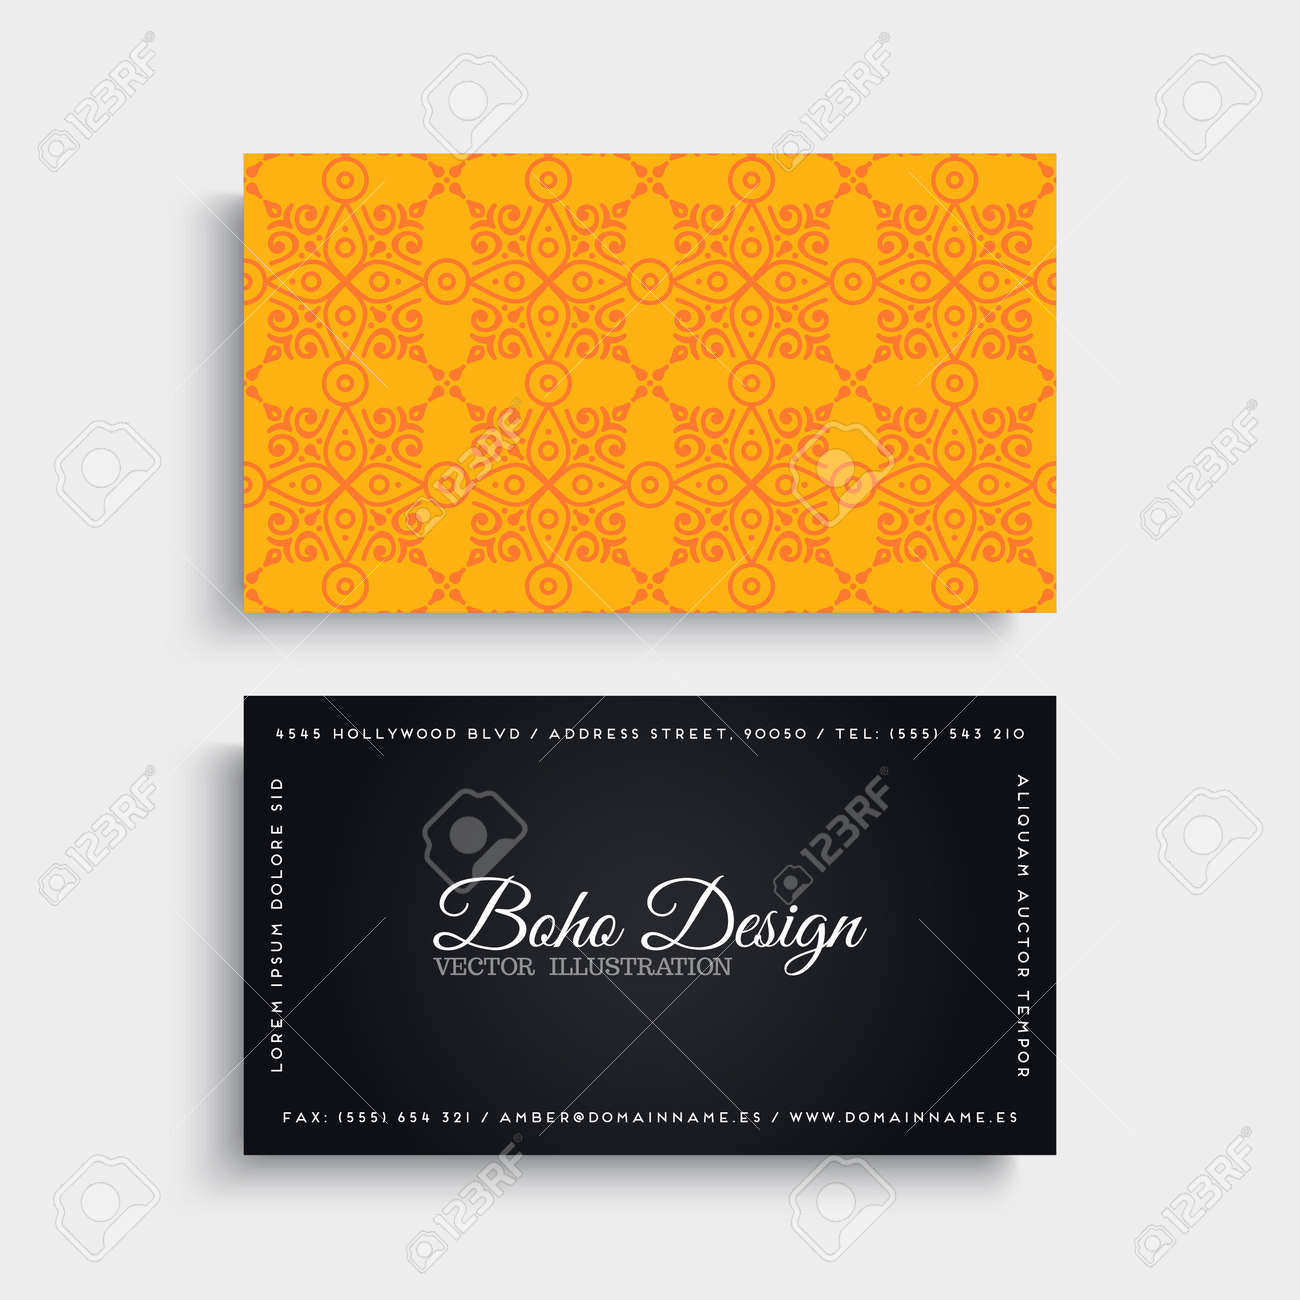 Business card vintage decorative elements ornamental floral banco de imagens business card vintage decorative elements ornamental floral business cards or invitation with mandala reheart Gallery